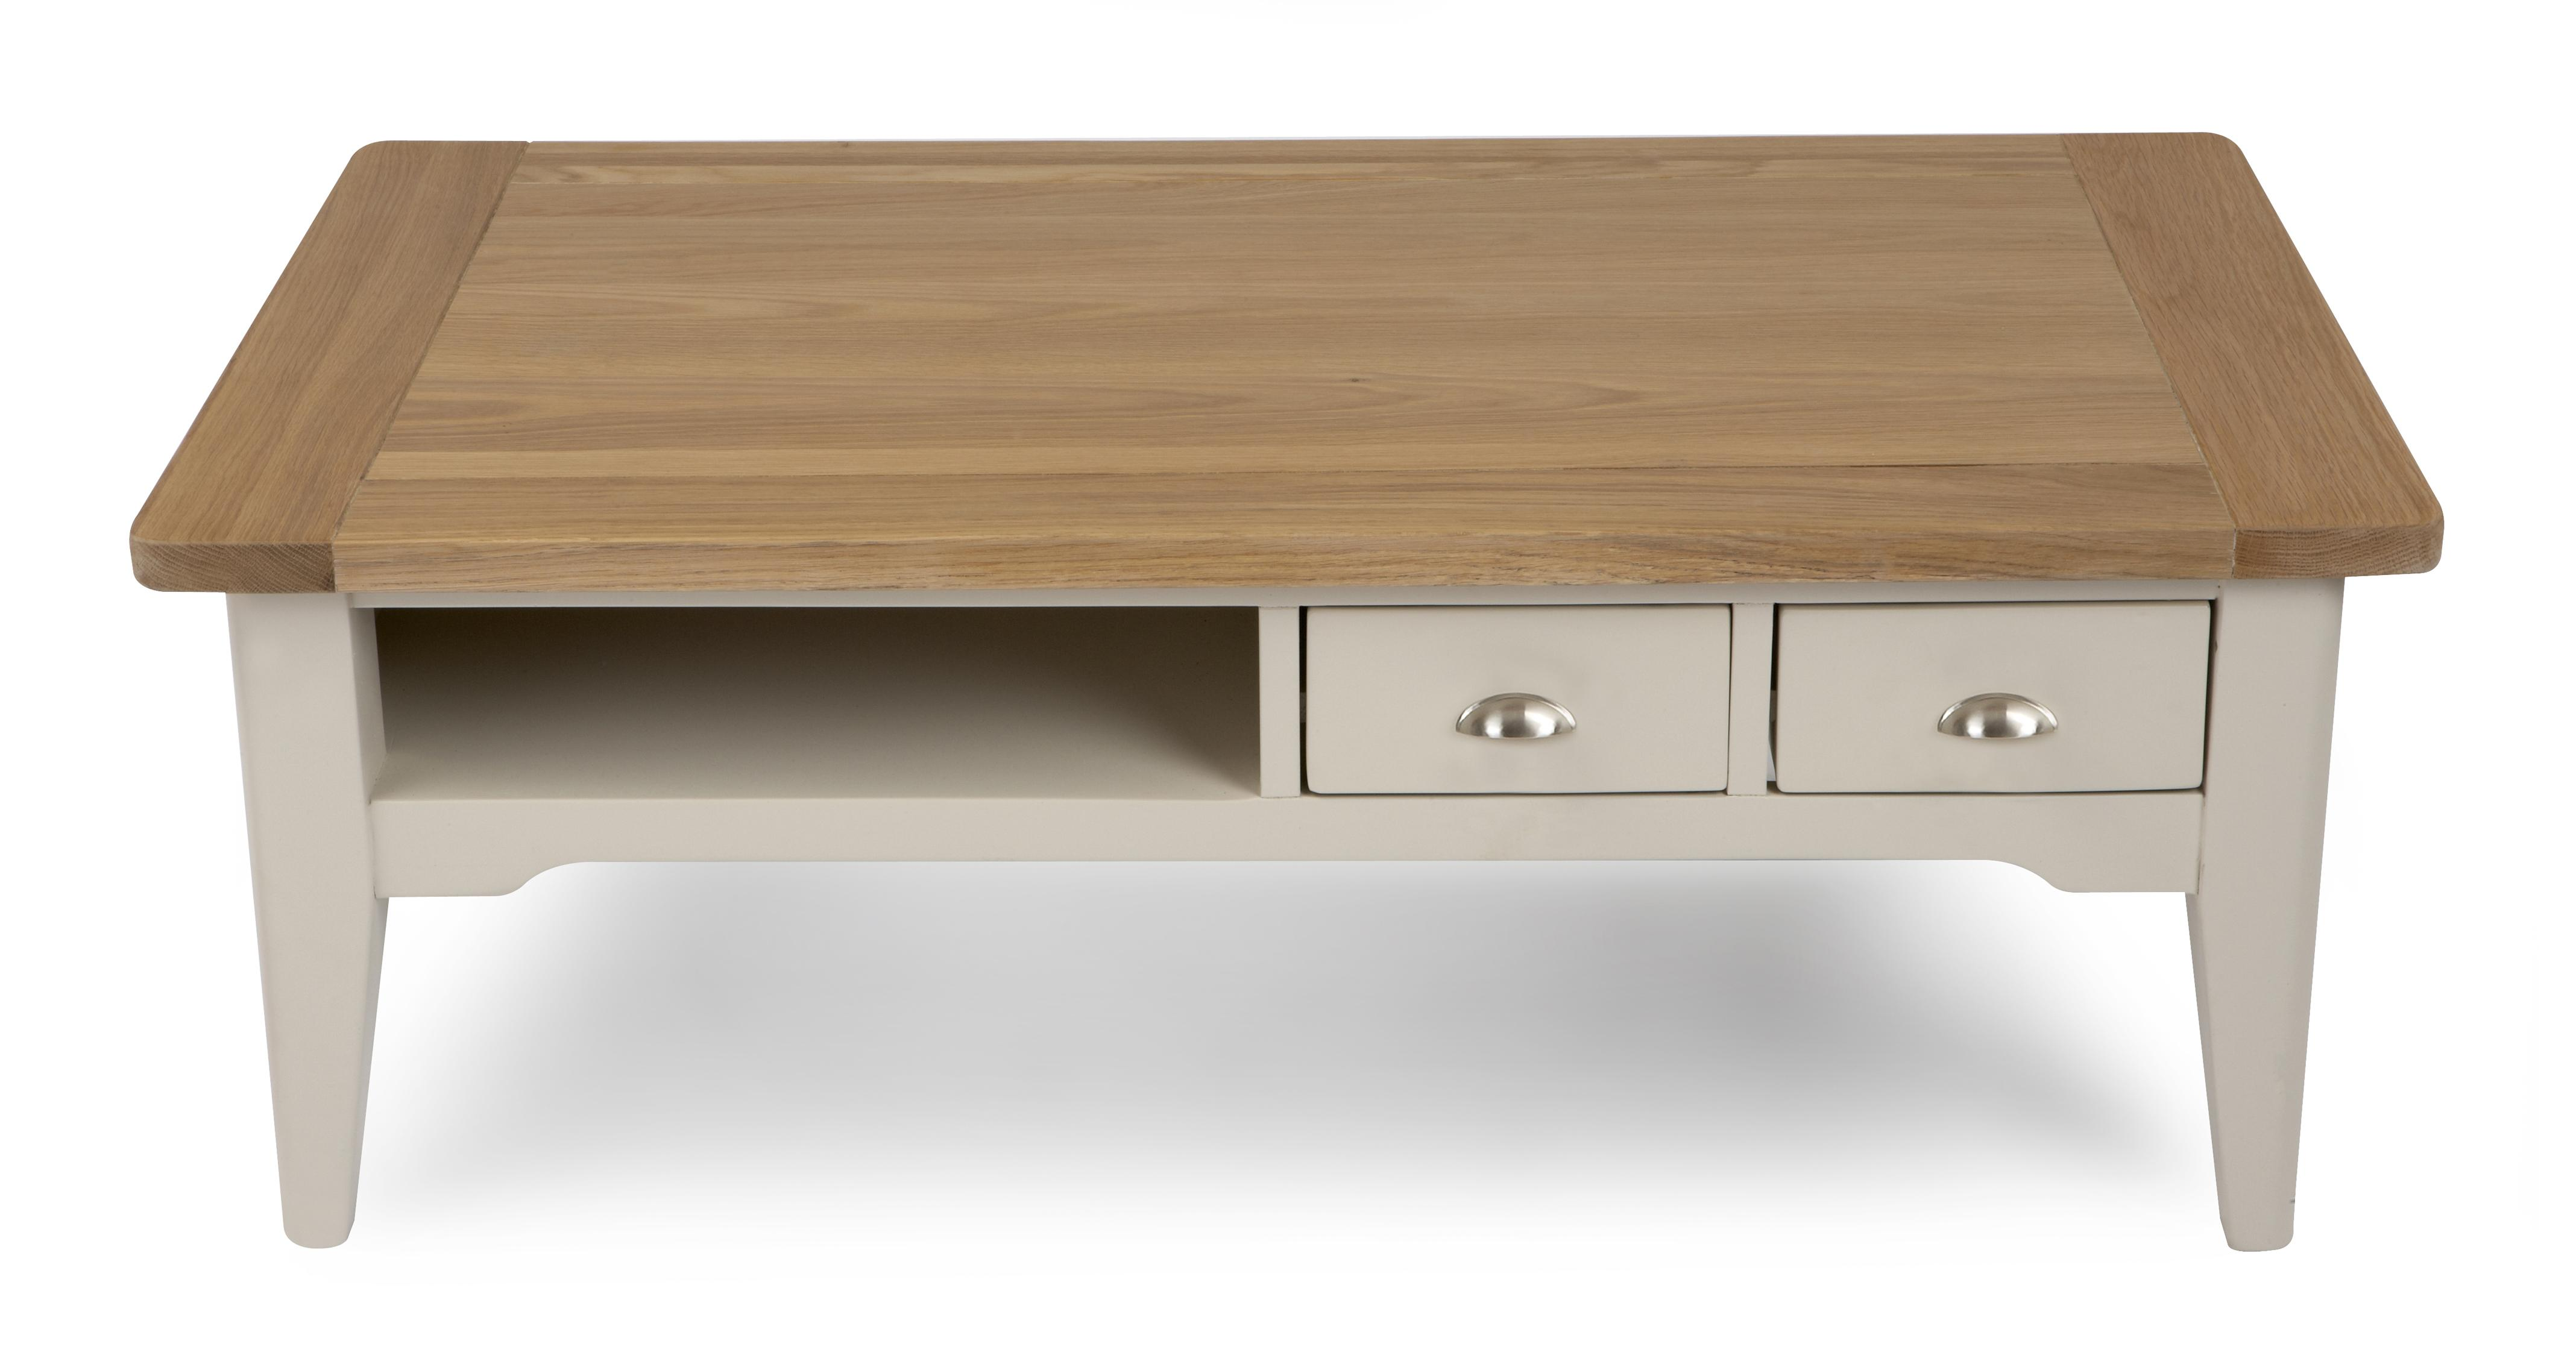 sc 1 st  DFS & Shore Storage Coffee Table | DFS